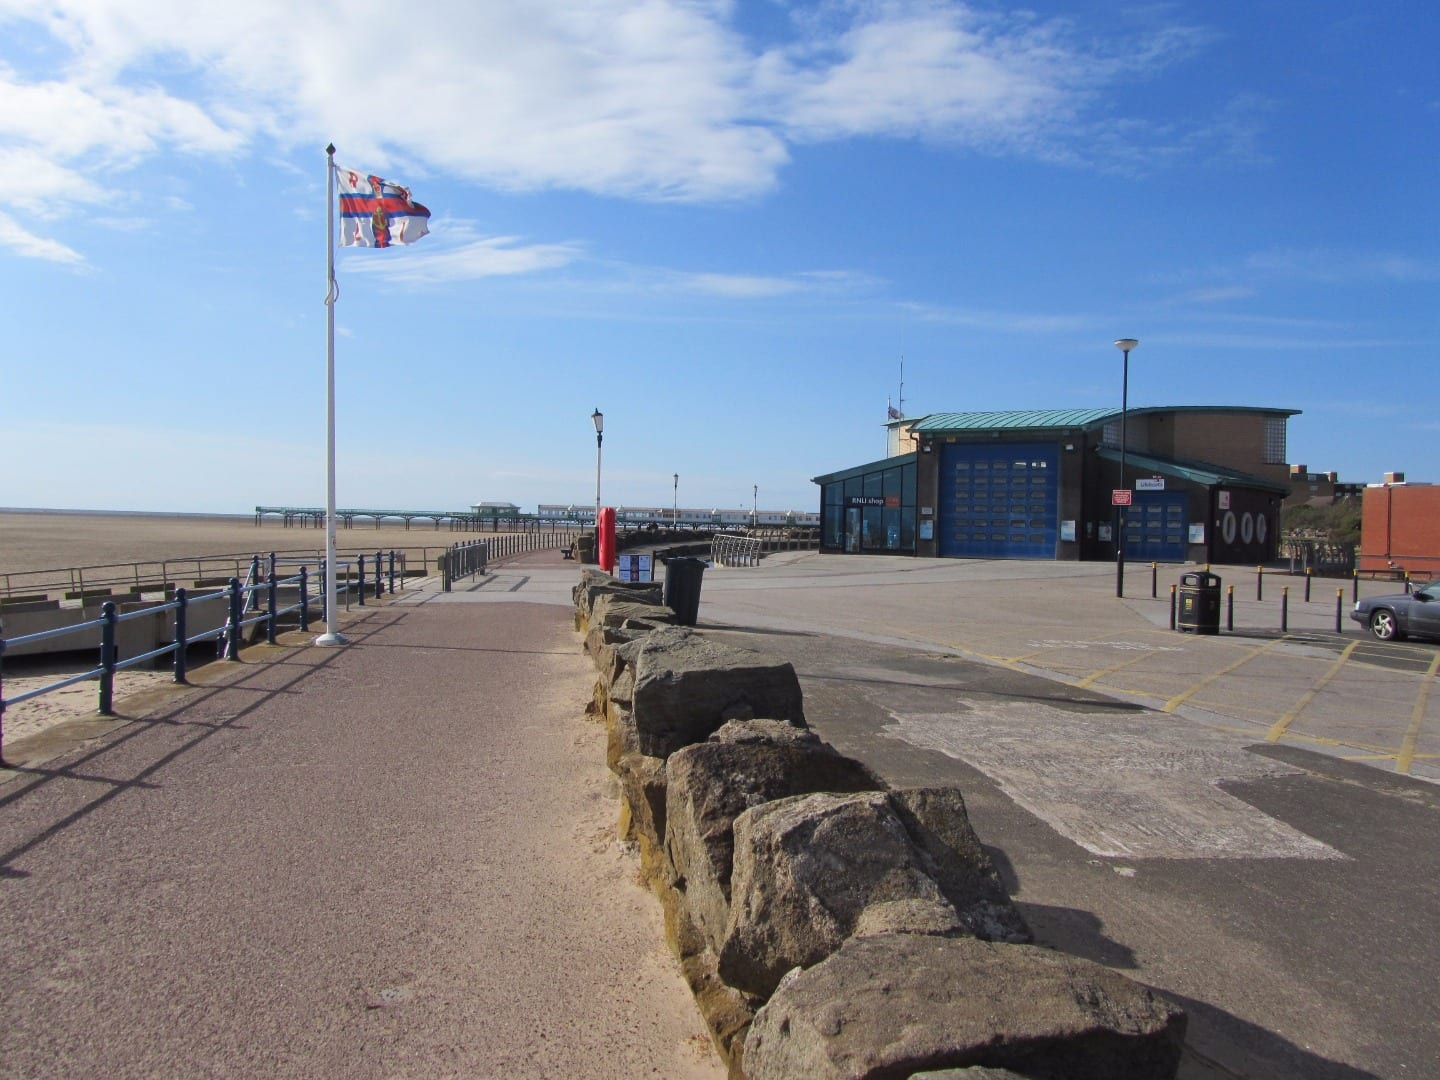 St Annes Promenade, island complex, RNLI and cafe, where Lytham St Annes Lifeboat Day is held